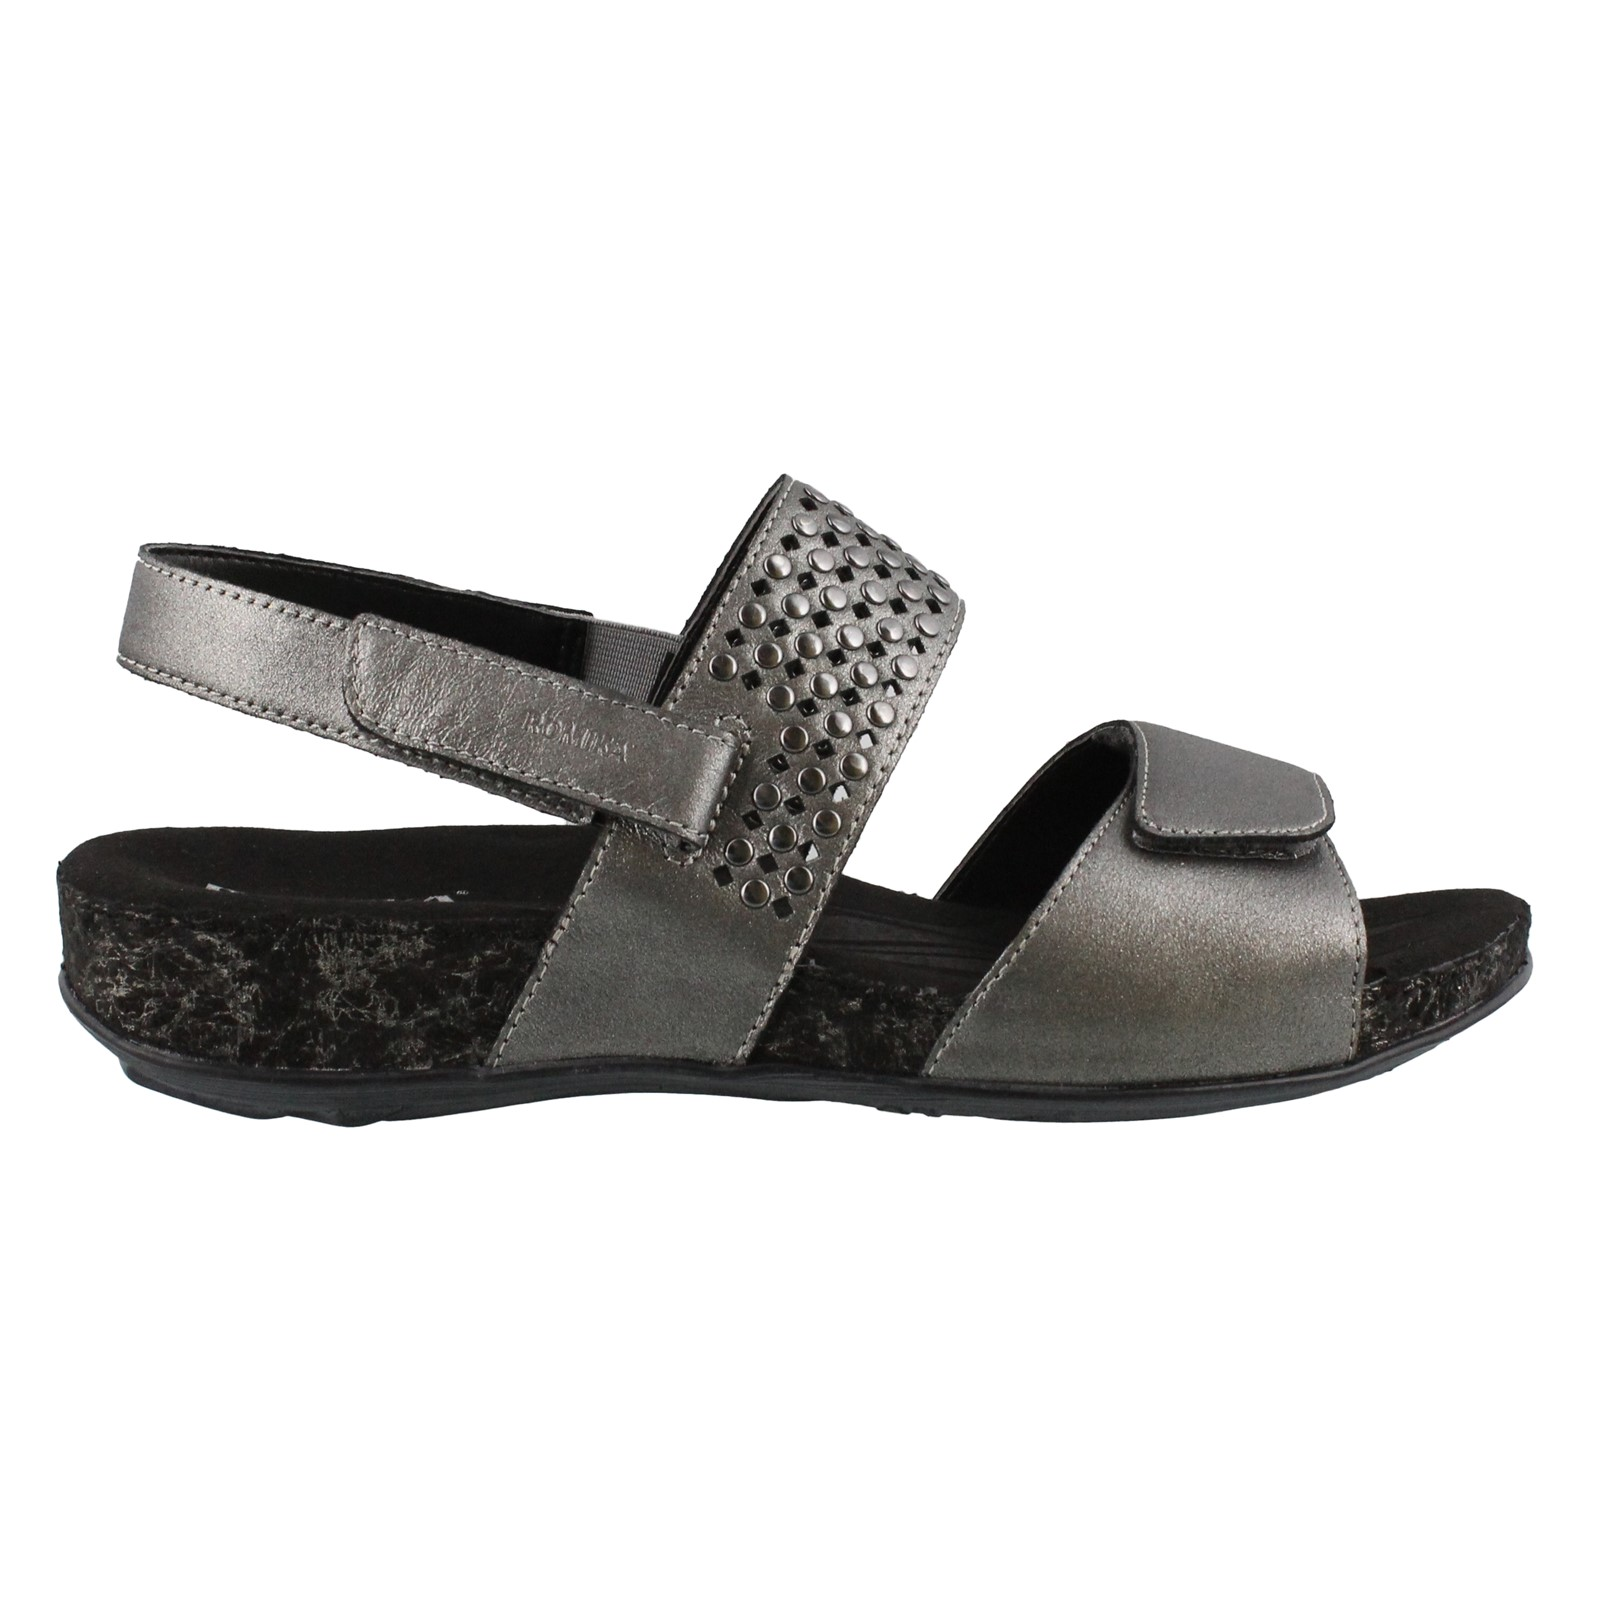 Women's Romika, Fidschi 49 Sandals